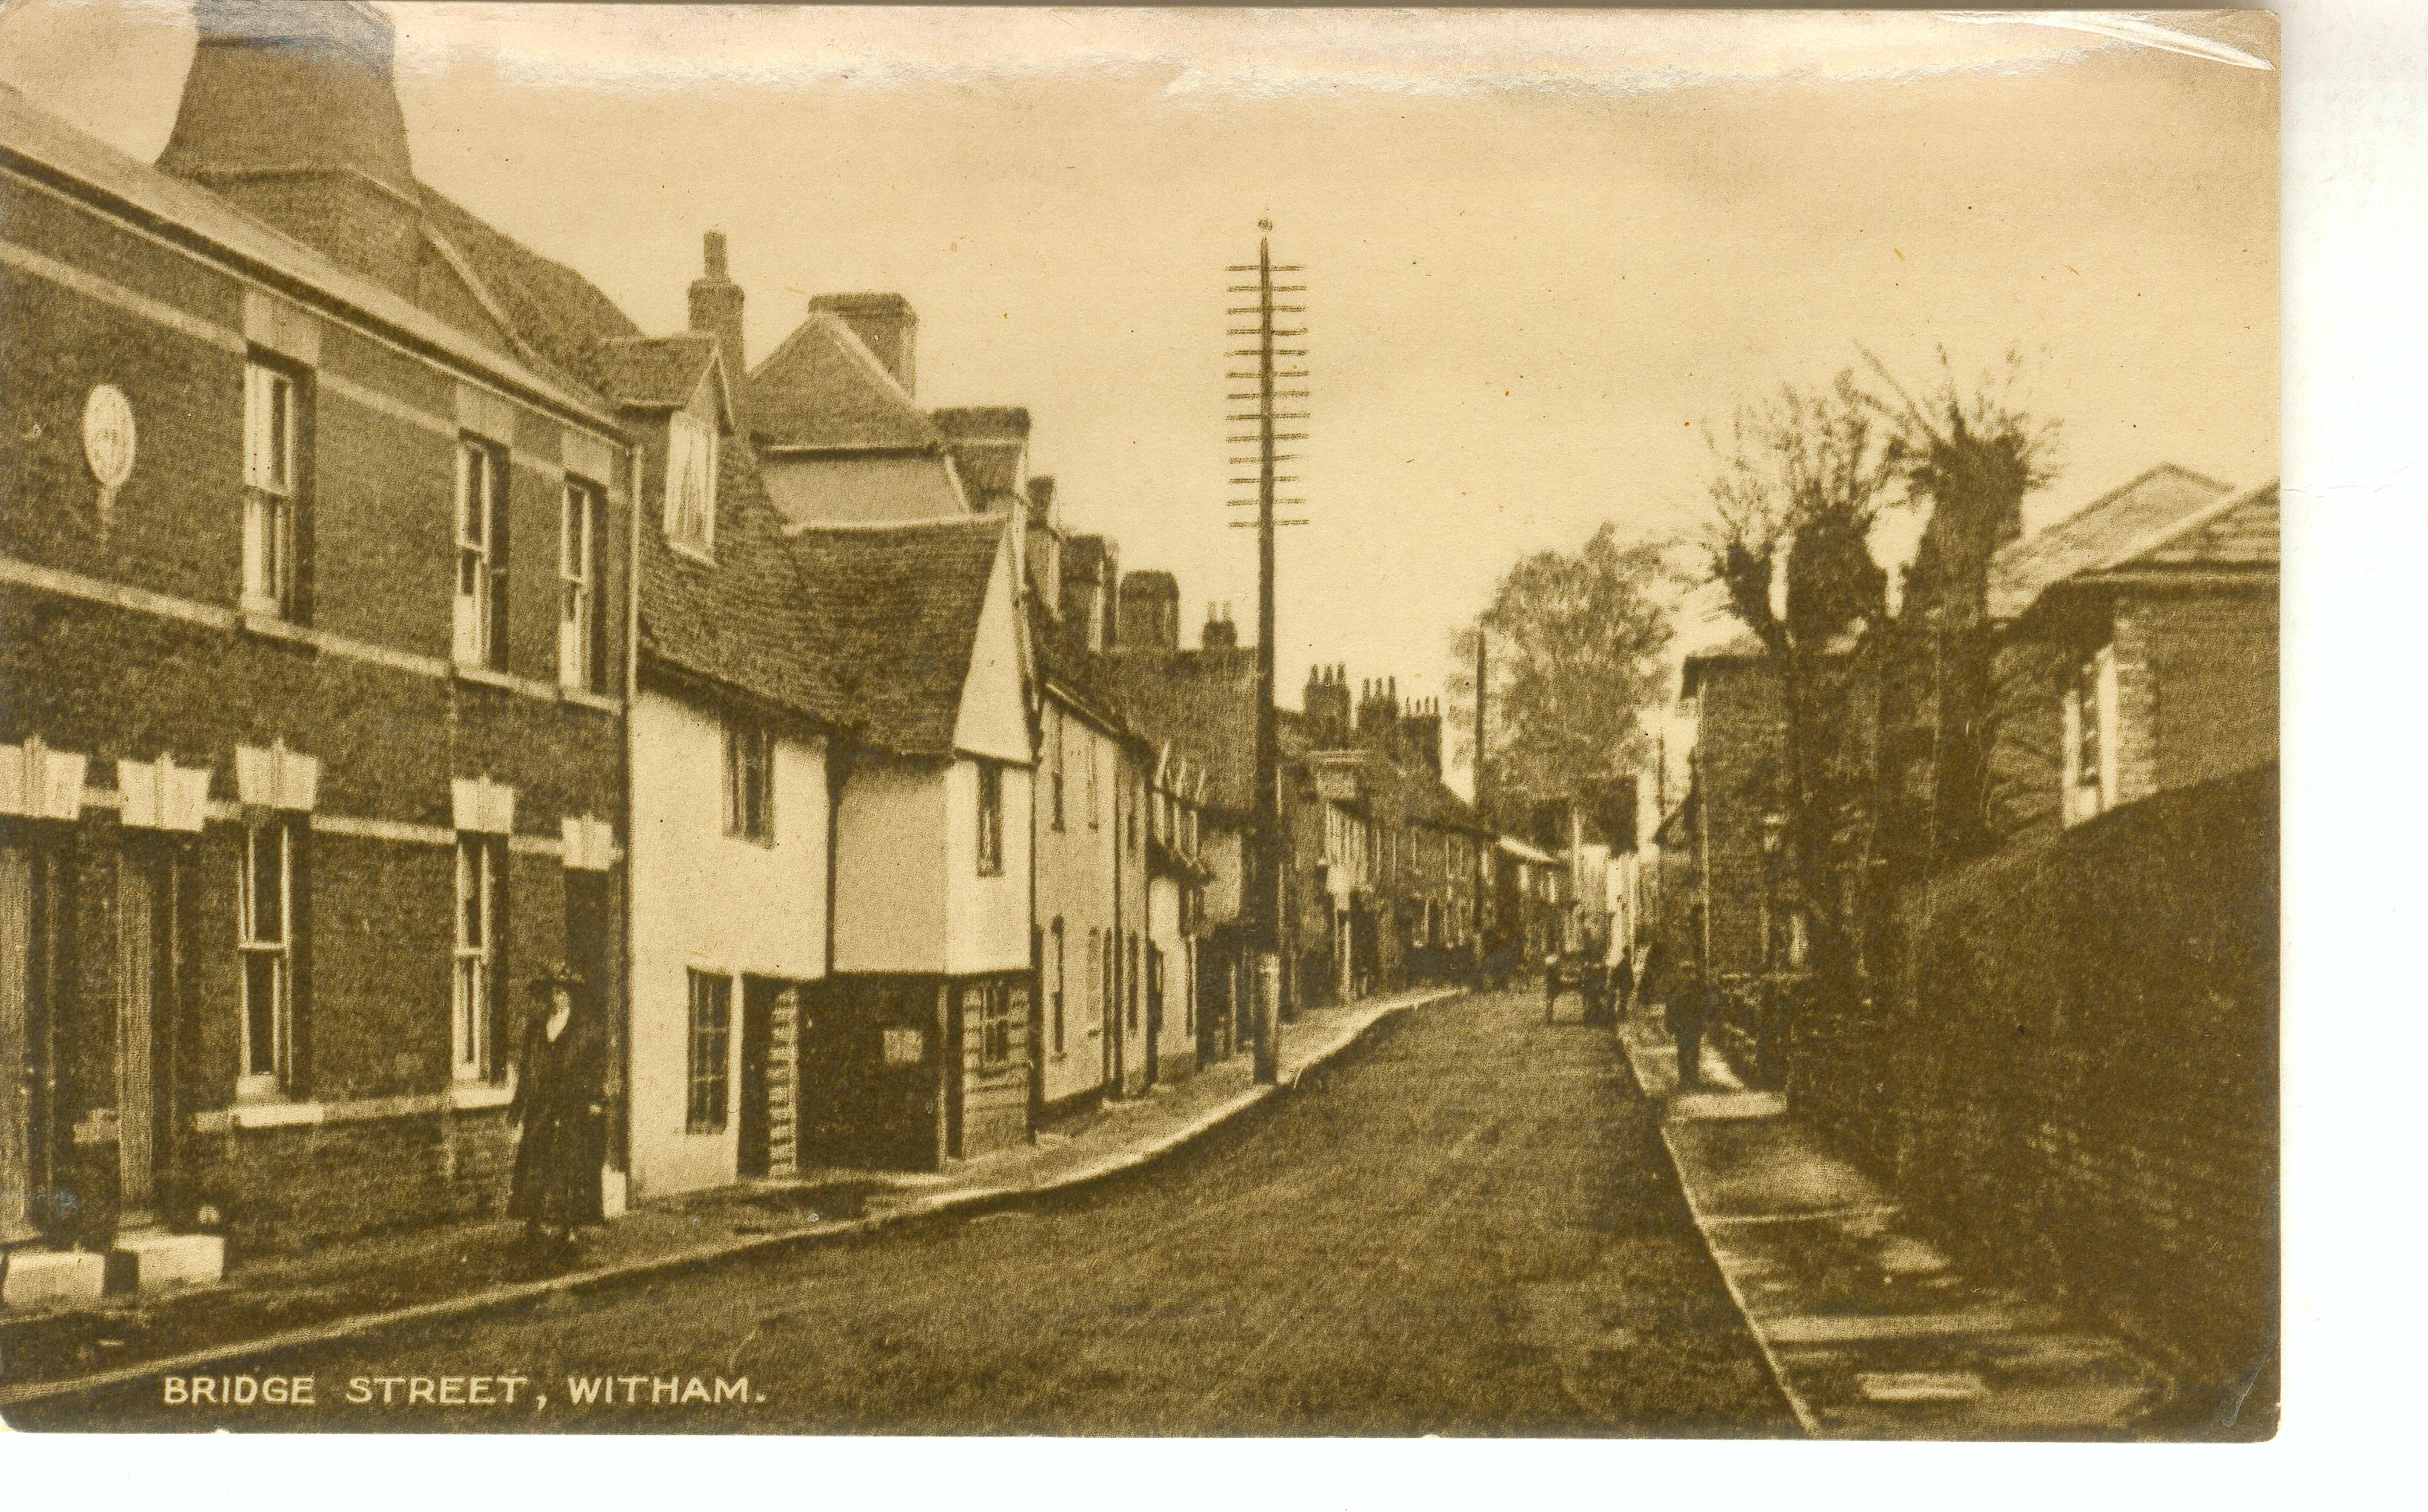 Bridge Street, looking west, discussed below.